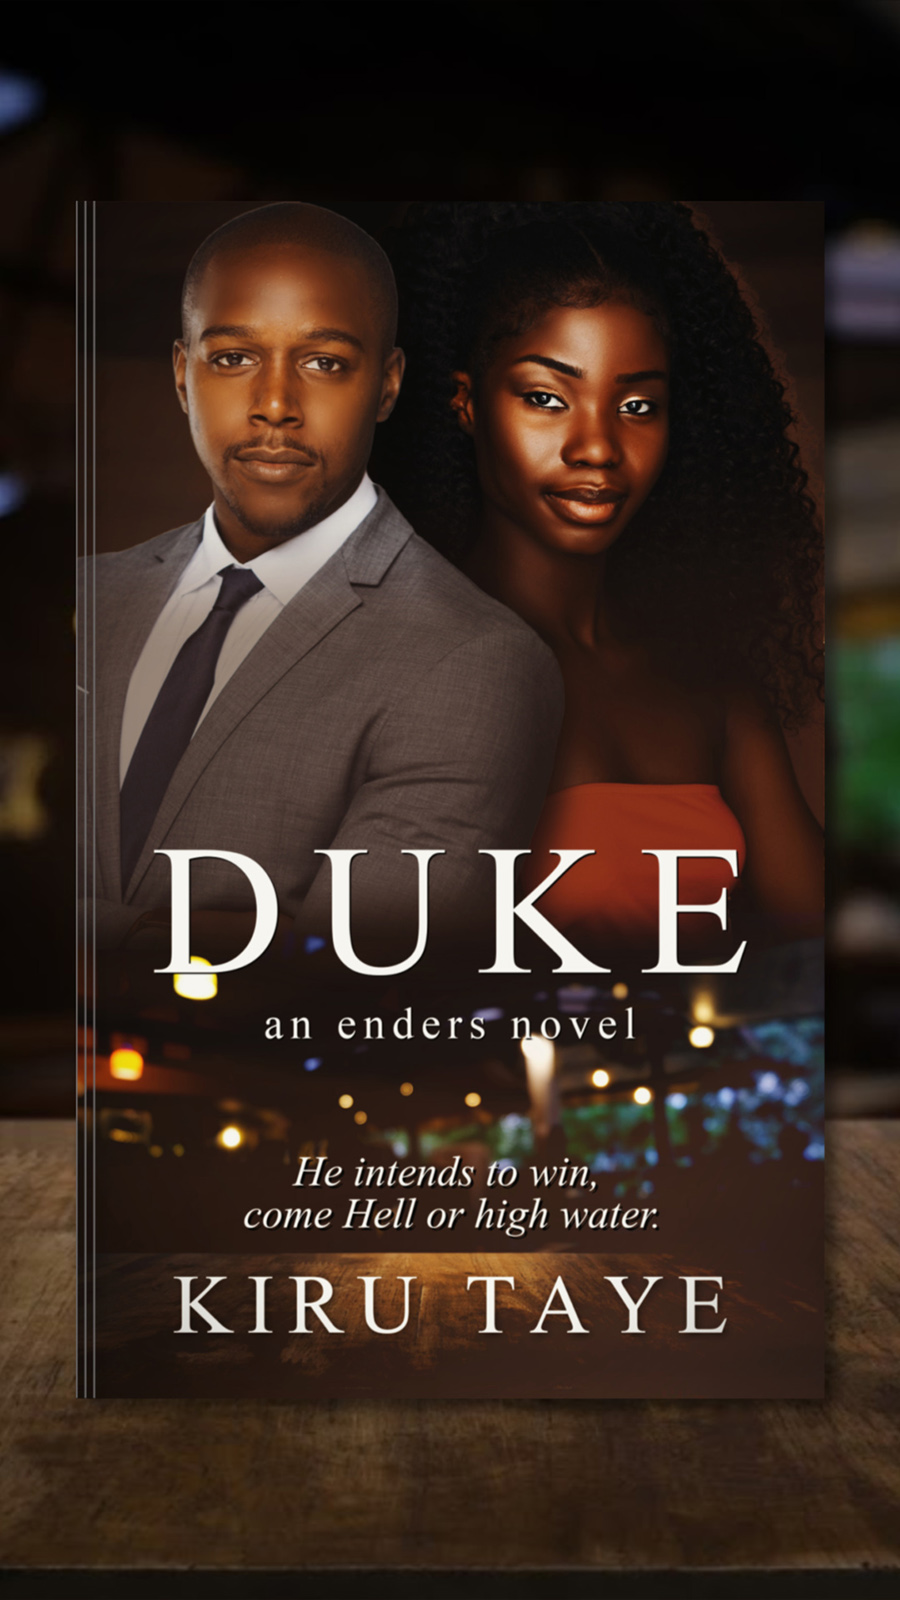 DUKE, the first book in the adult contemporary romance series, Enders, by Kiru Taye